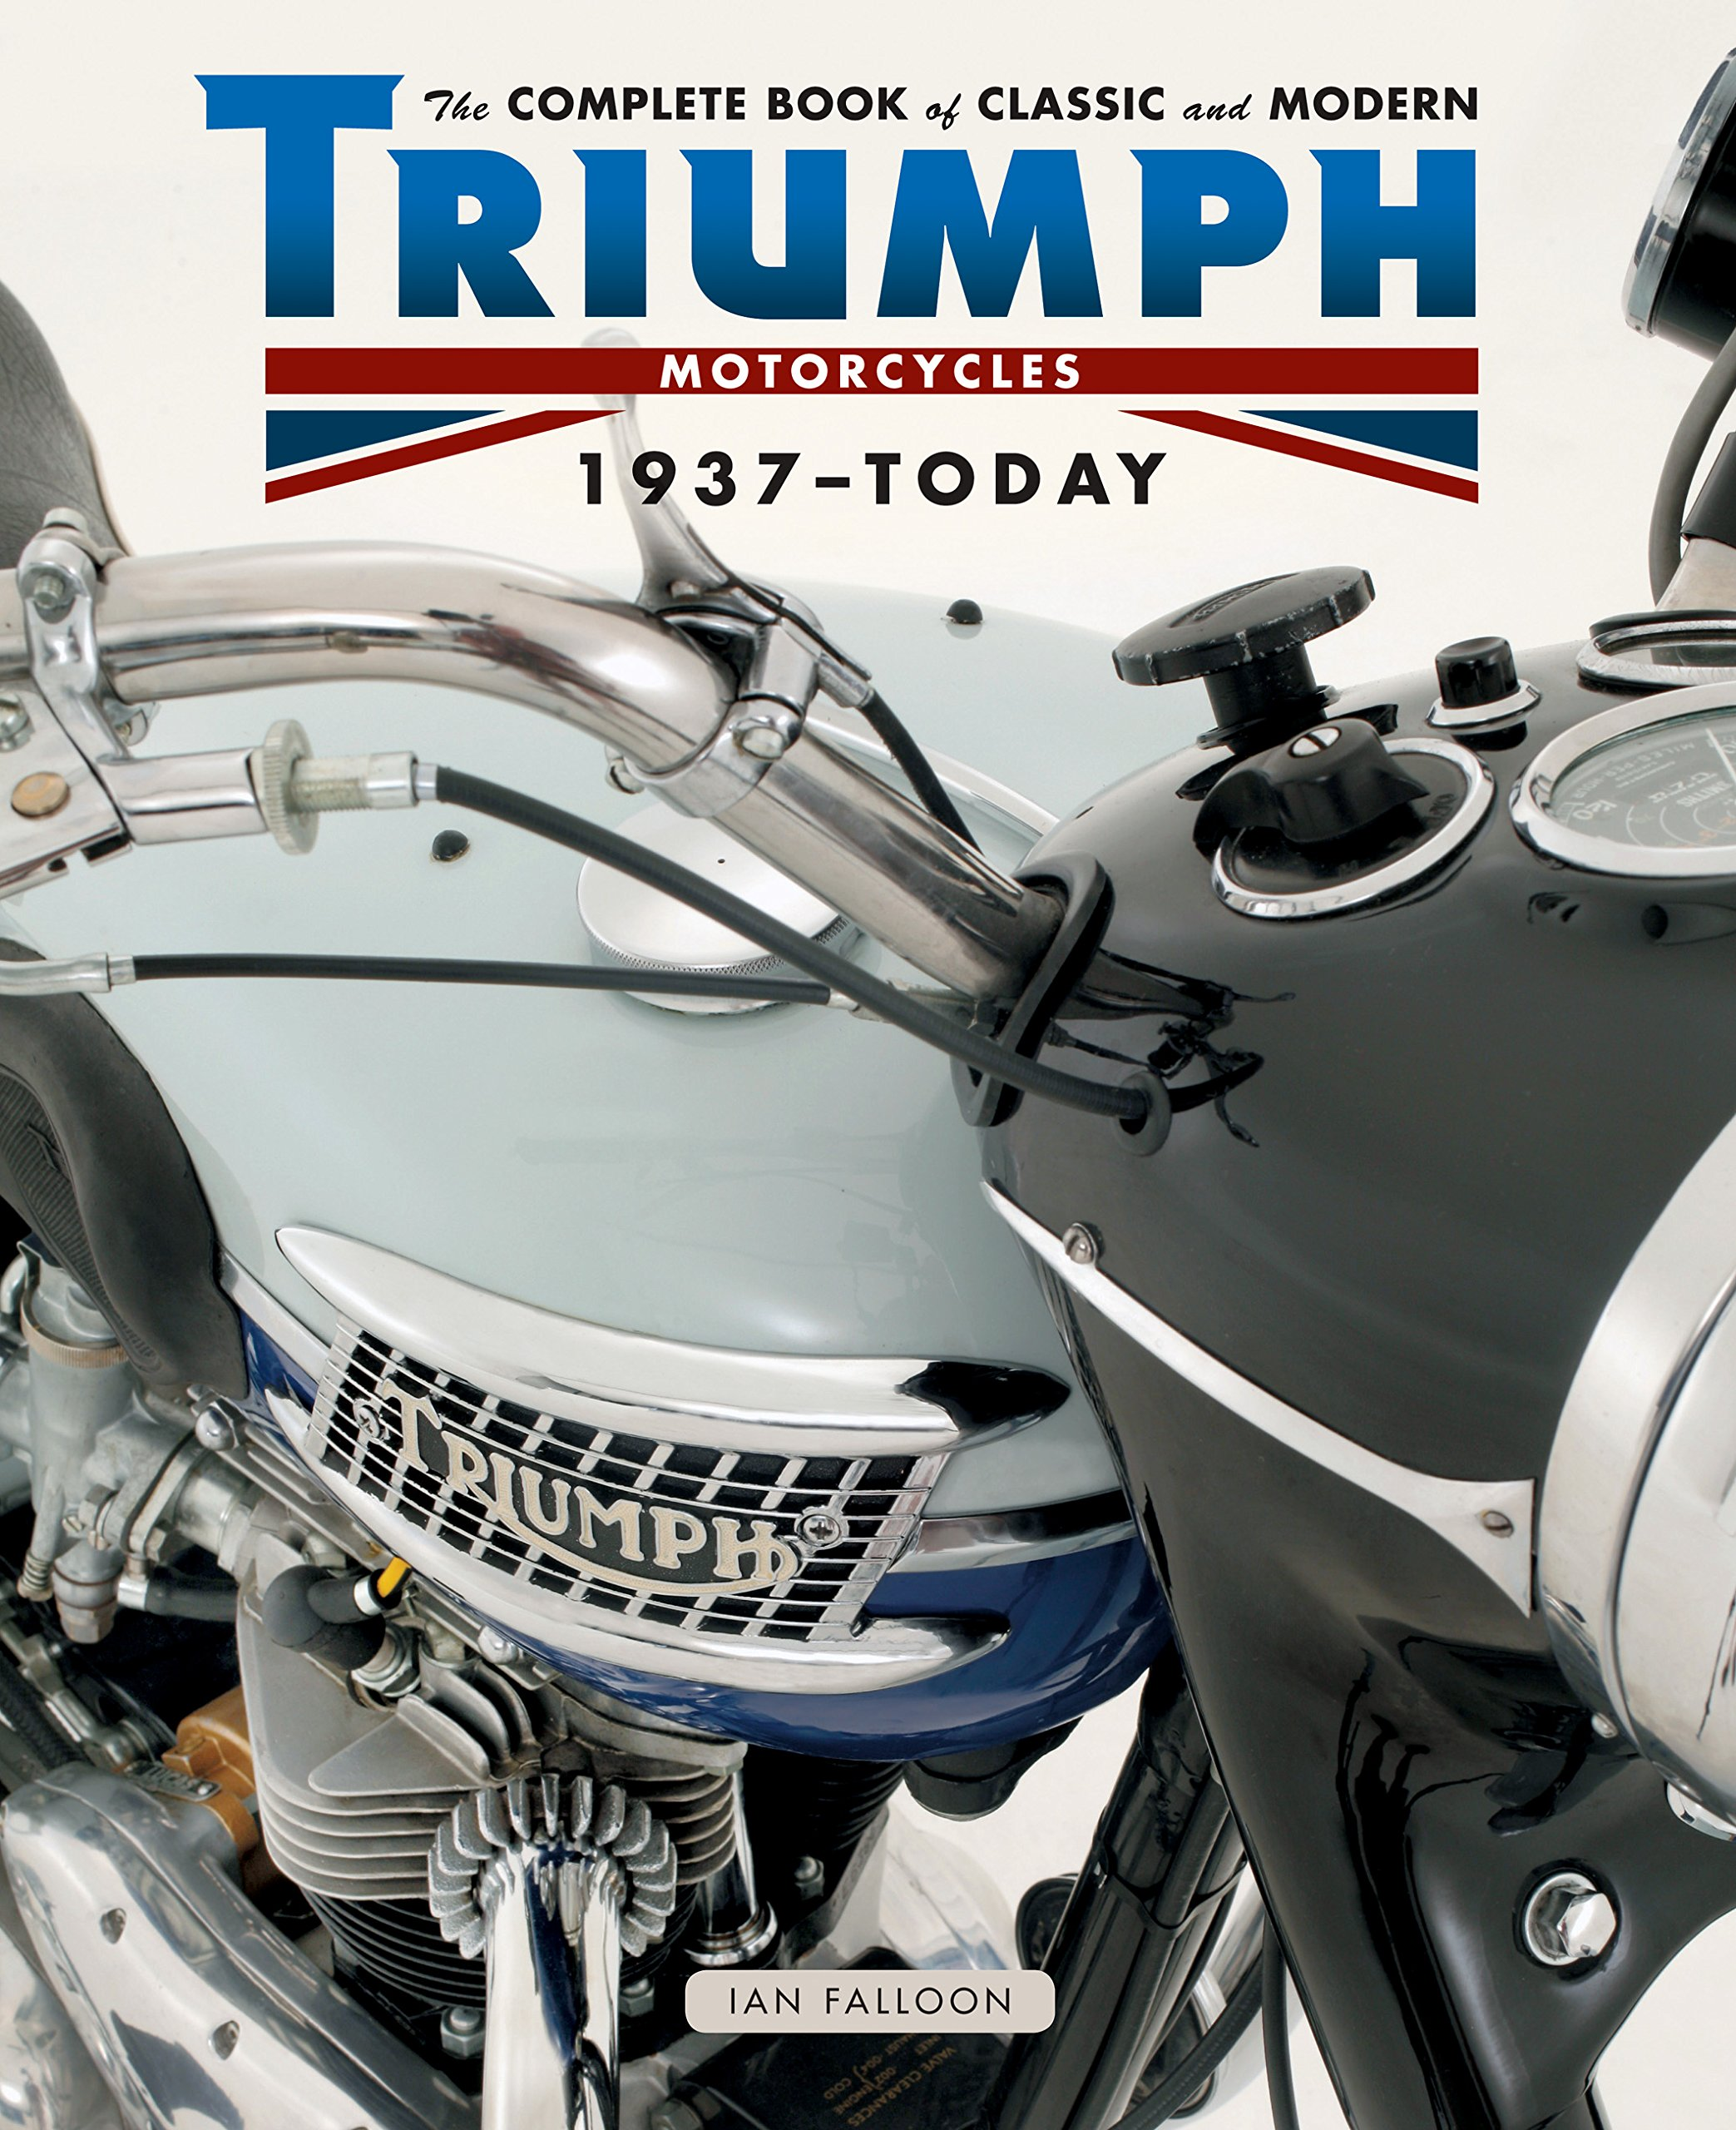 The complete book of classic and modern triumph motorcycles 1937 the complete book of classic and modern triumph motorcycles 1937 today complete book series ian falloon 9780760345450 amazon books fandeluxe Choice Image